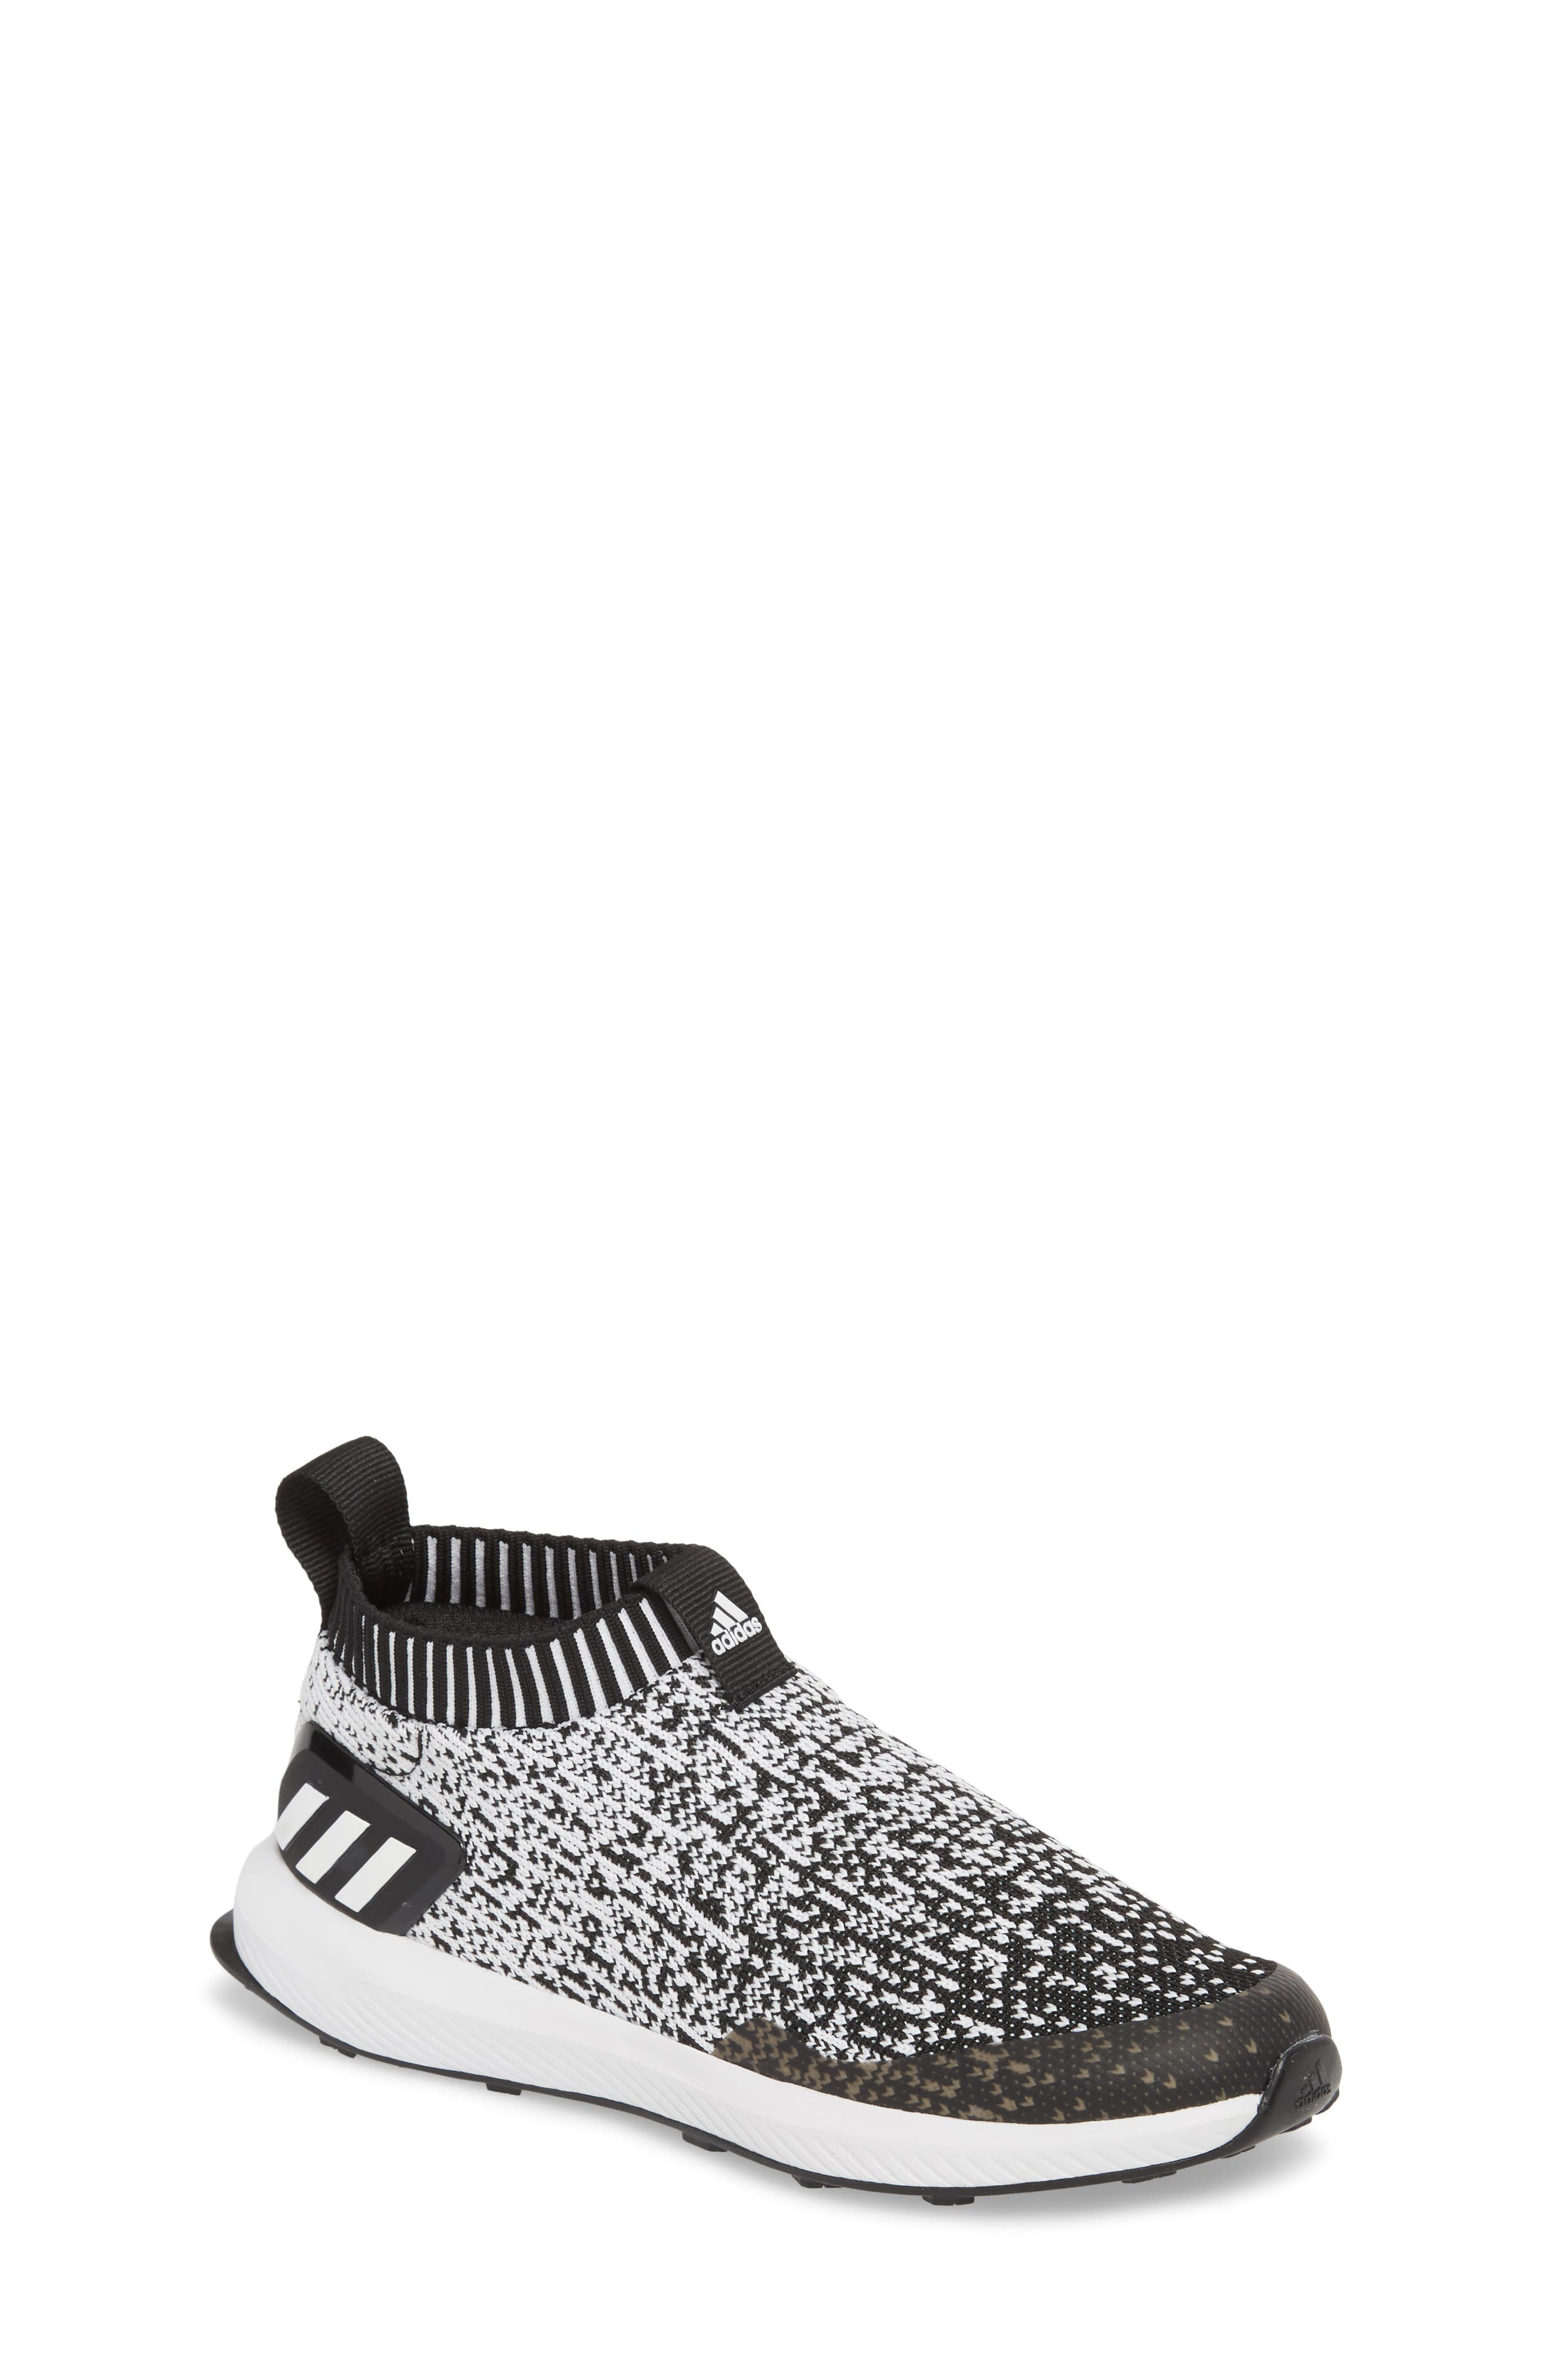 RapidaRun Laceless Knit Sneaker,                         Main,                         color, Black/ White/ Black